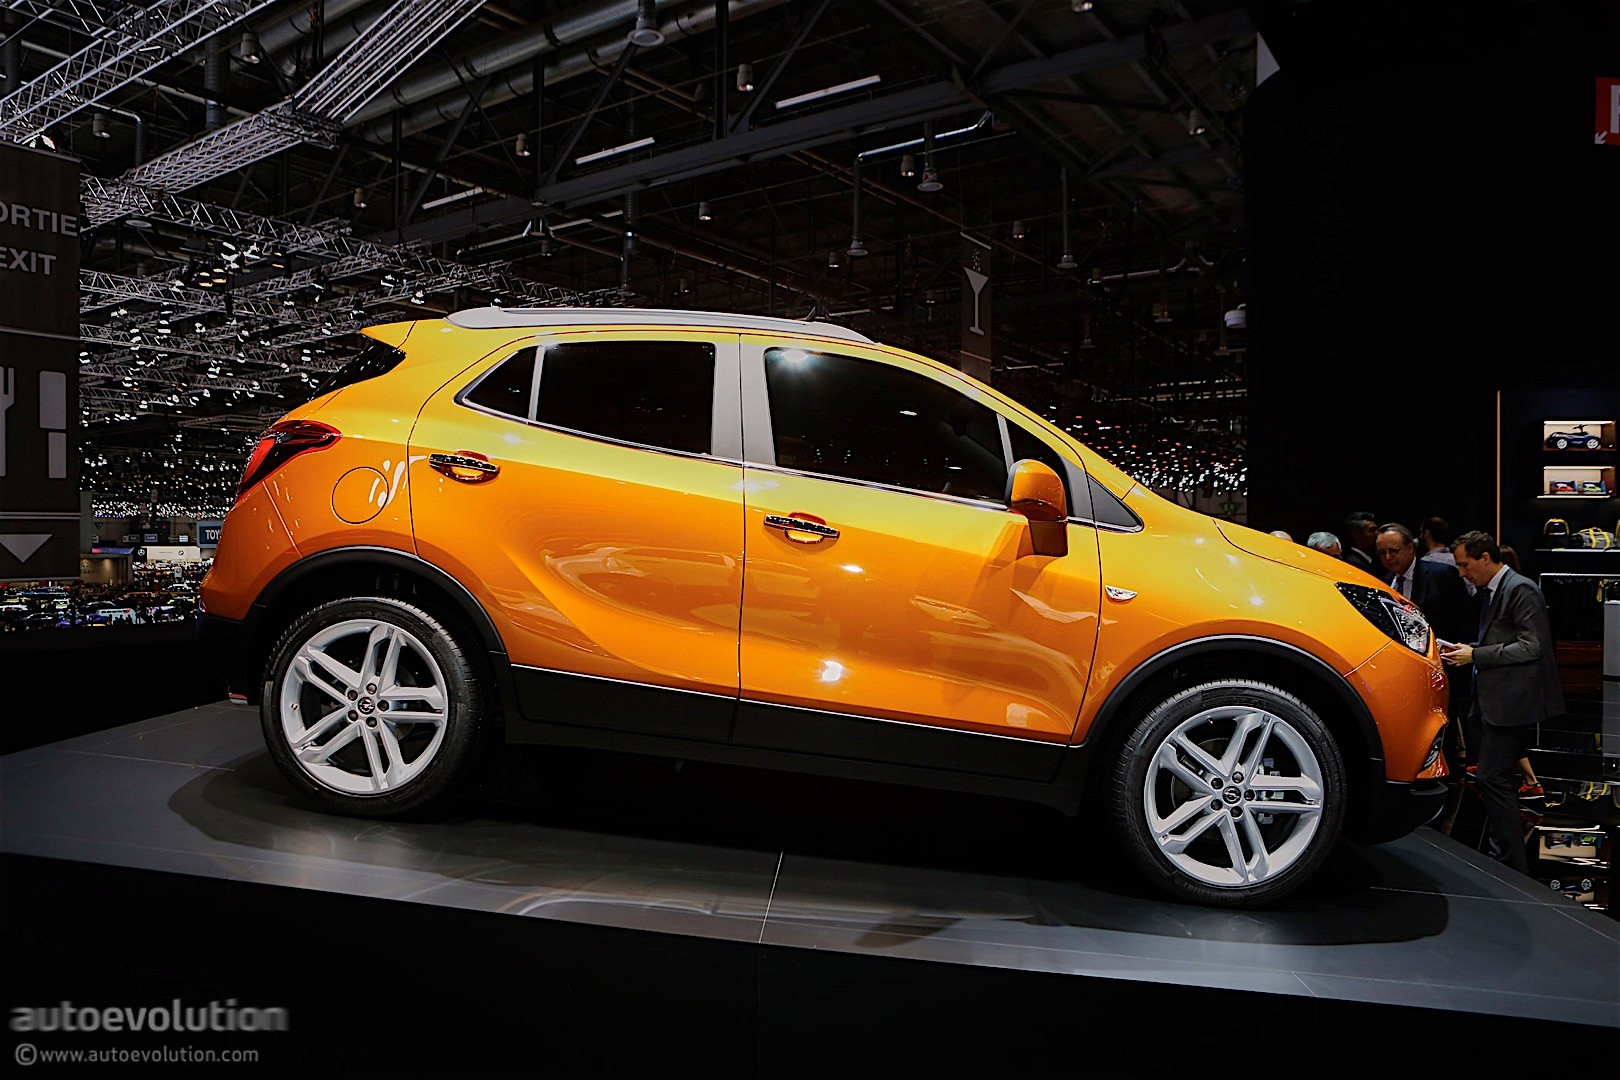 opel mokka x enters production in spain mokka surpasses 600 000 sales autoevolution. Black Bedroom Furniture Sets. Home Design Ideas